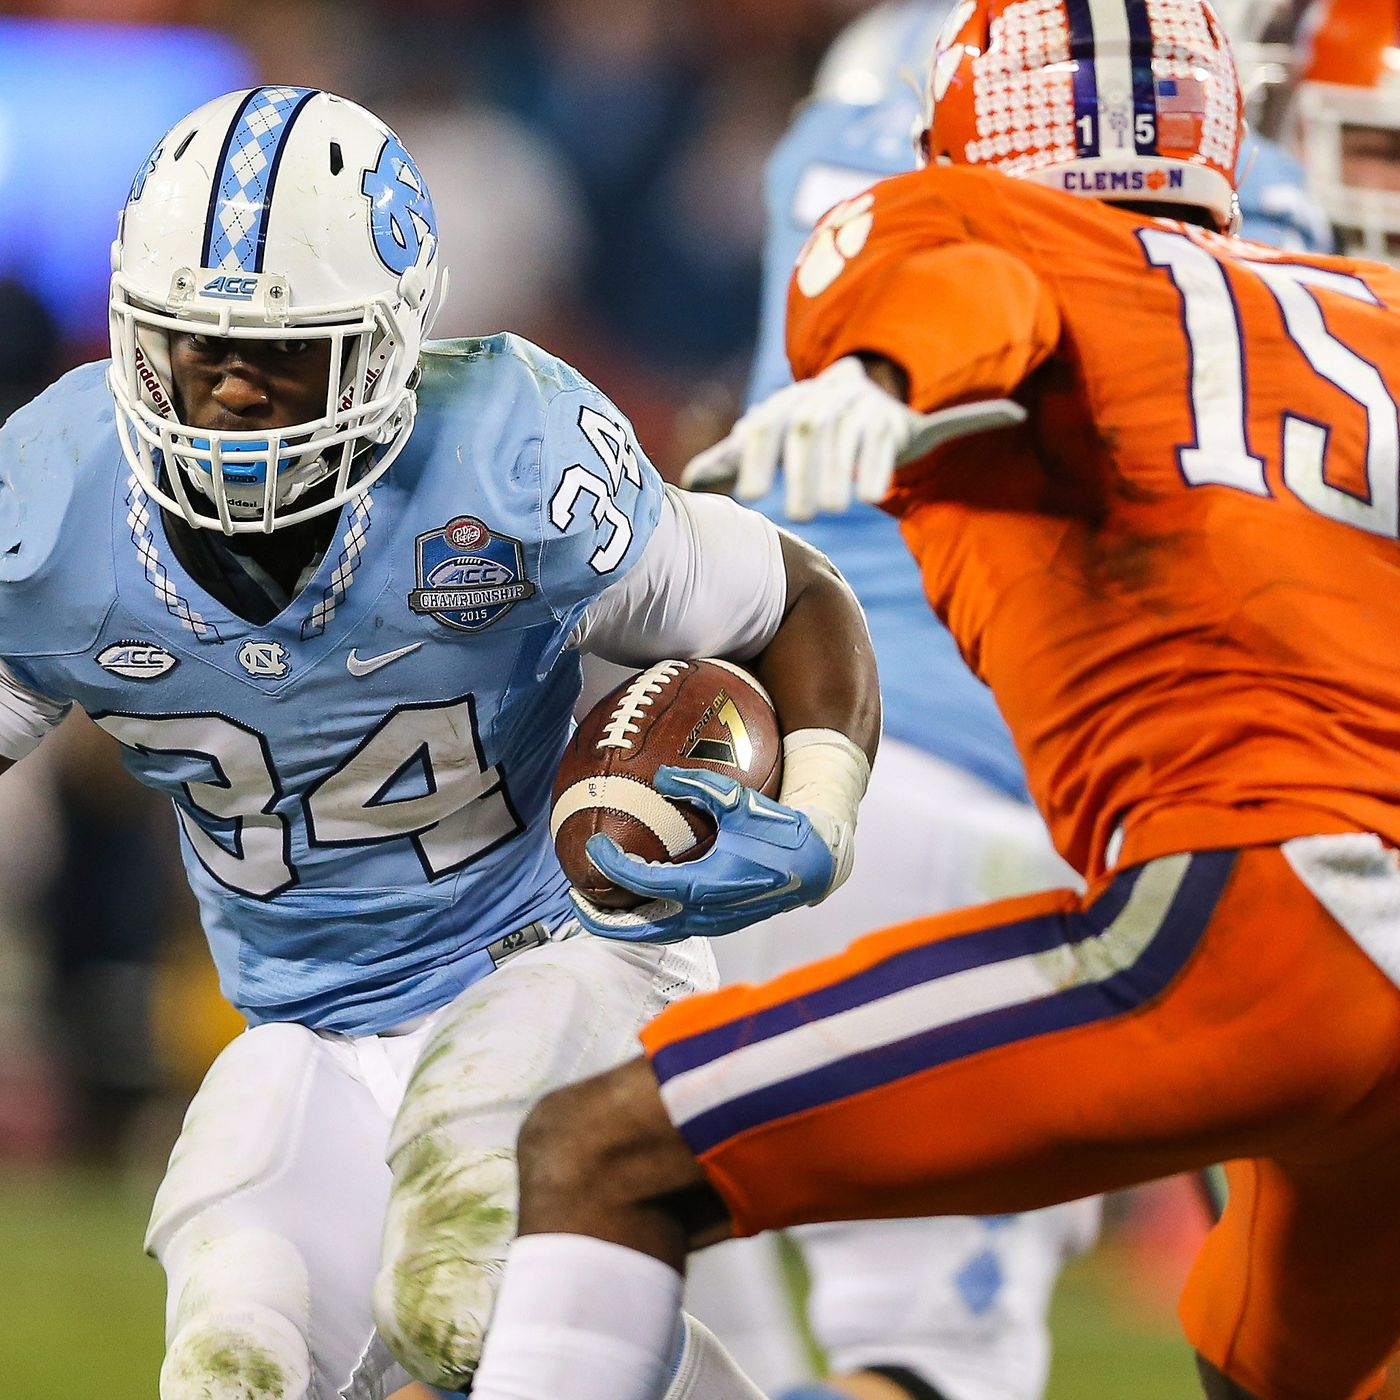 North Carolina football finally lived up to its potential! (Now ...